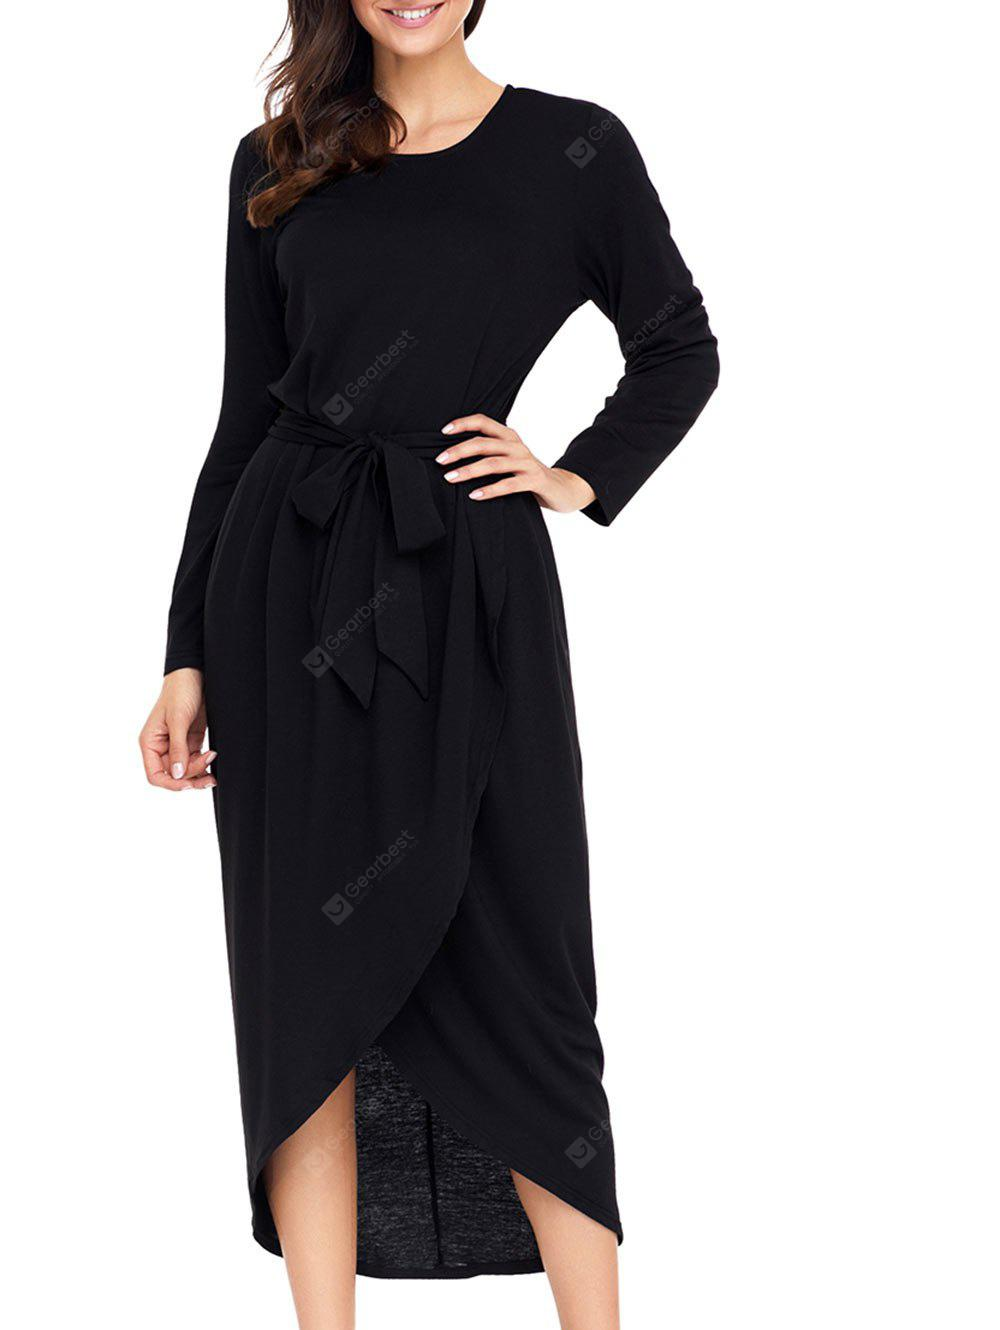 Long Sleeve Tulip Dress with Belt